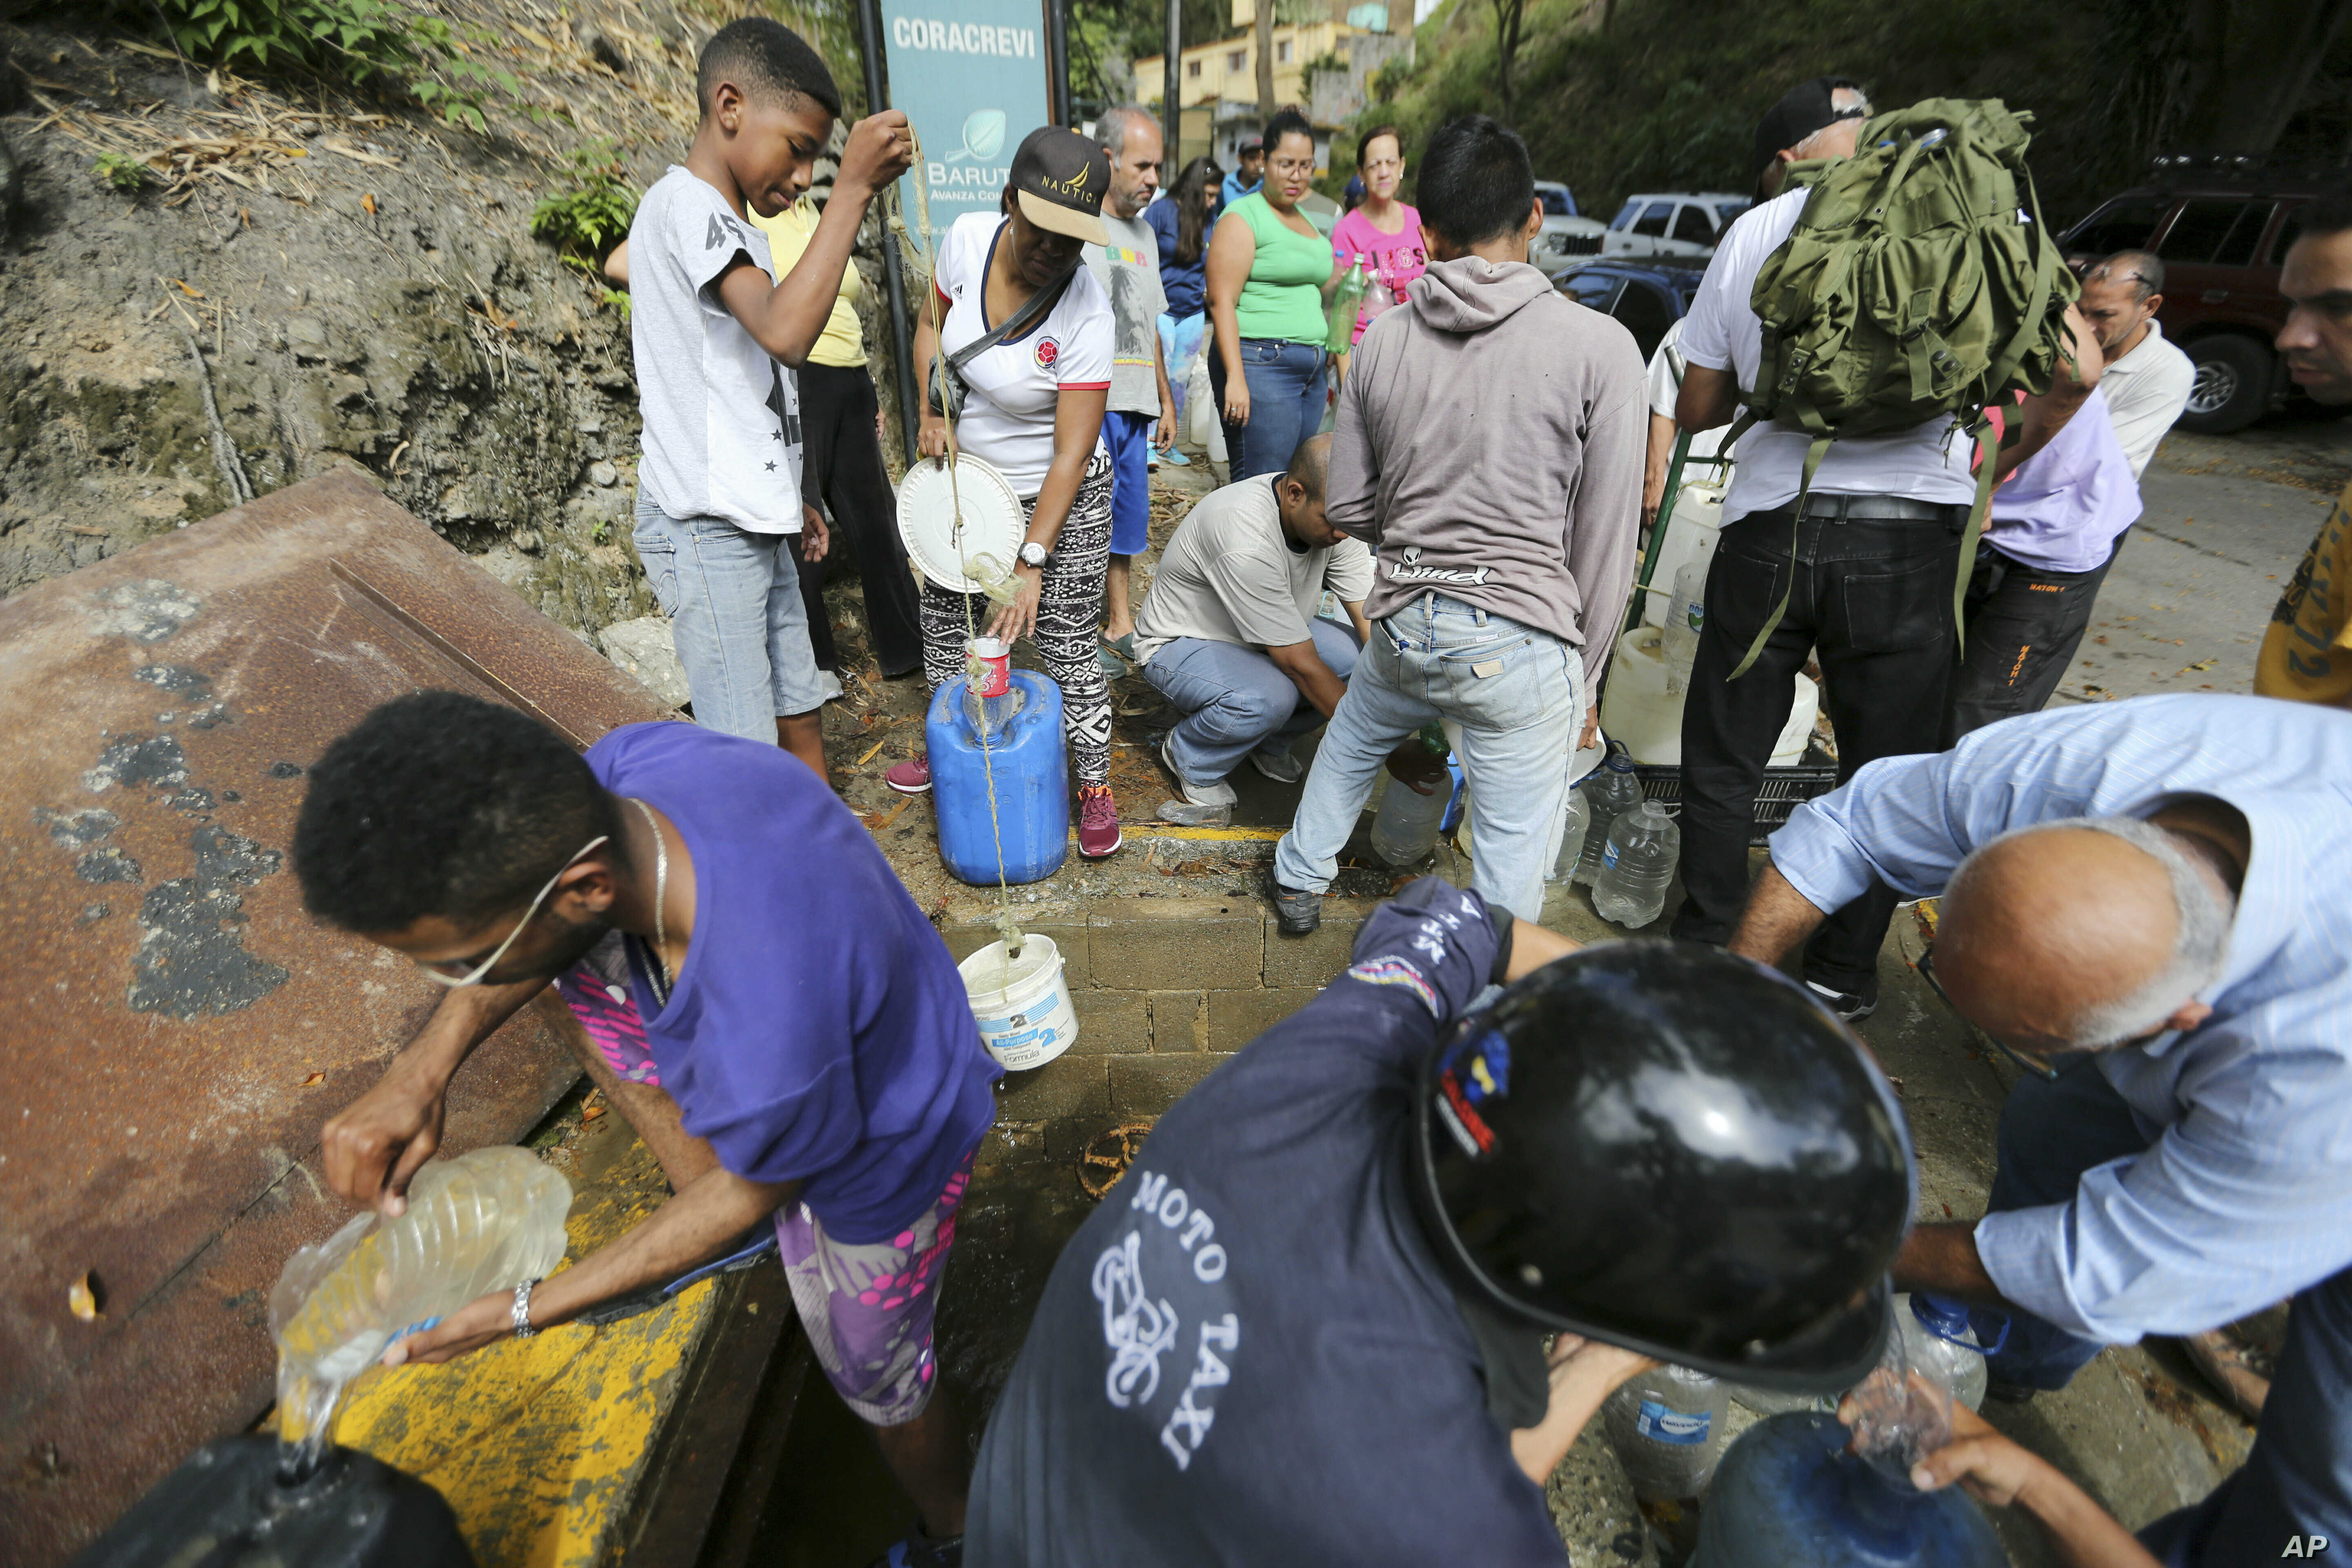 People collect water from an open pipeline during rolling blackouts, which affects the water pumps in people's homes and apartment buildings, in Caracas, Venezuela, Monday, March 11, 2019.